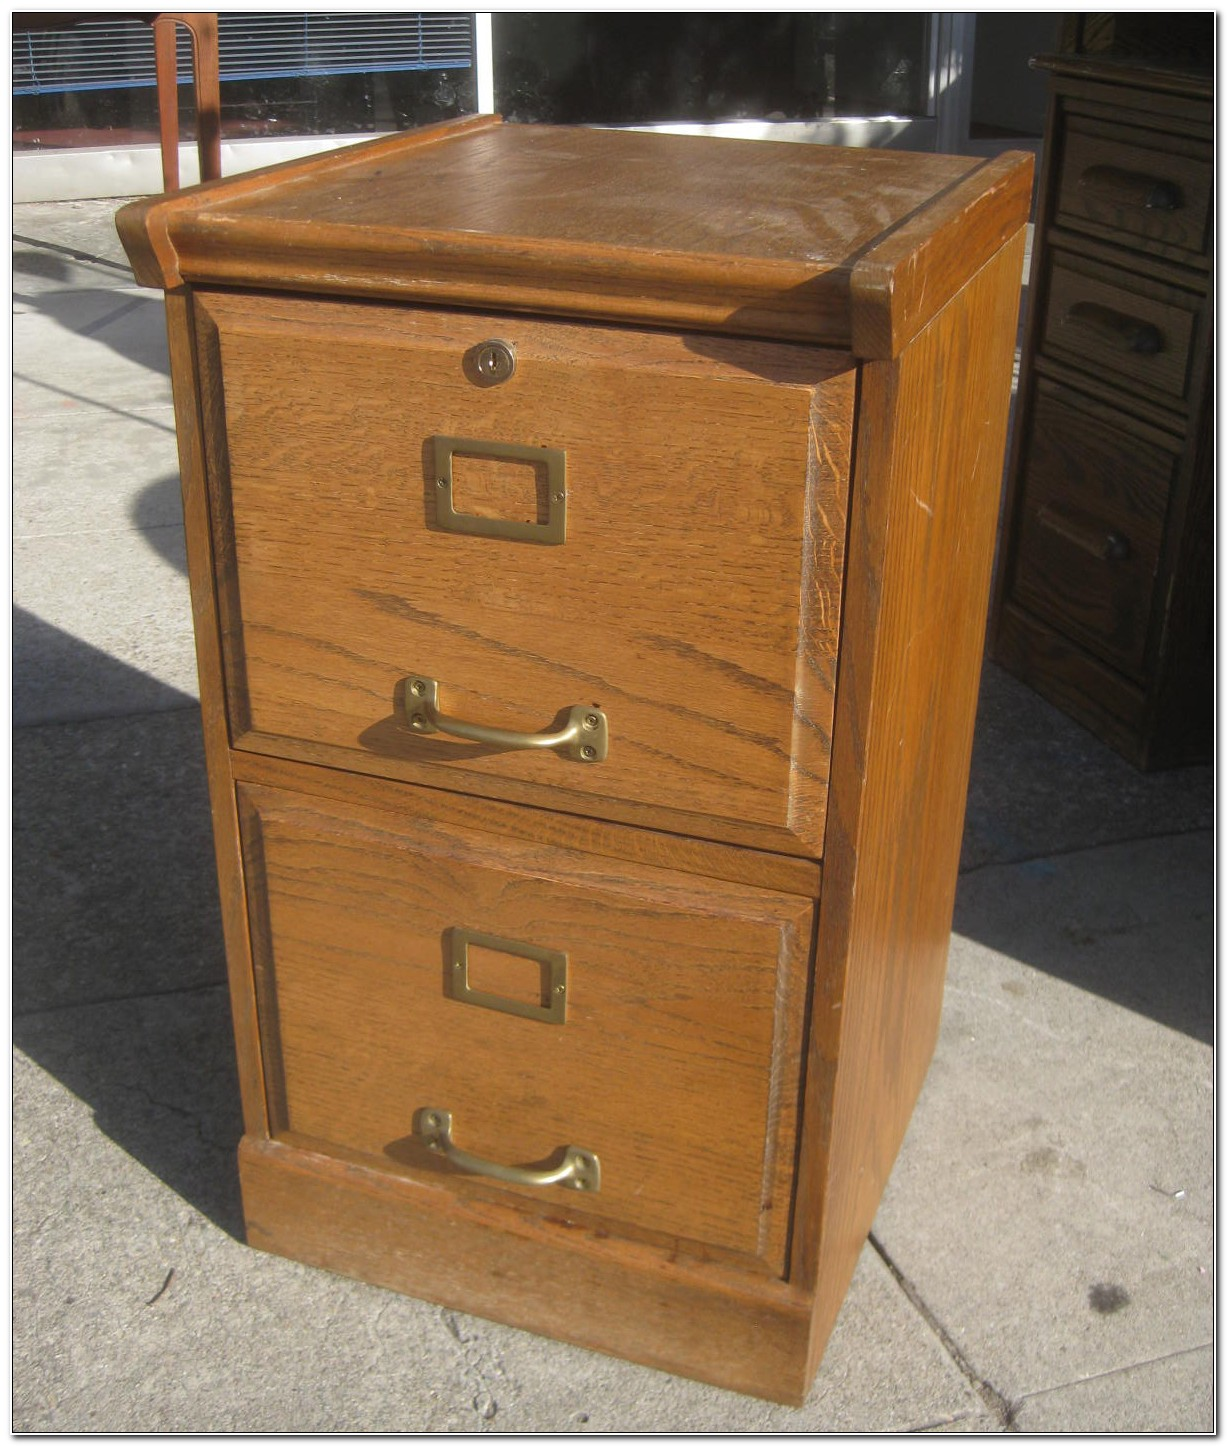 2 Drawer Wooden File Cabinet With Lock